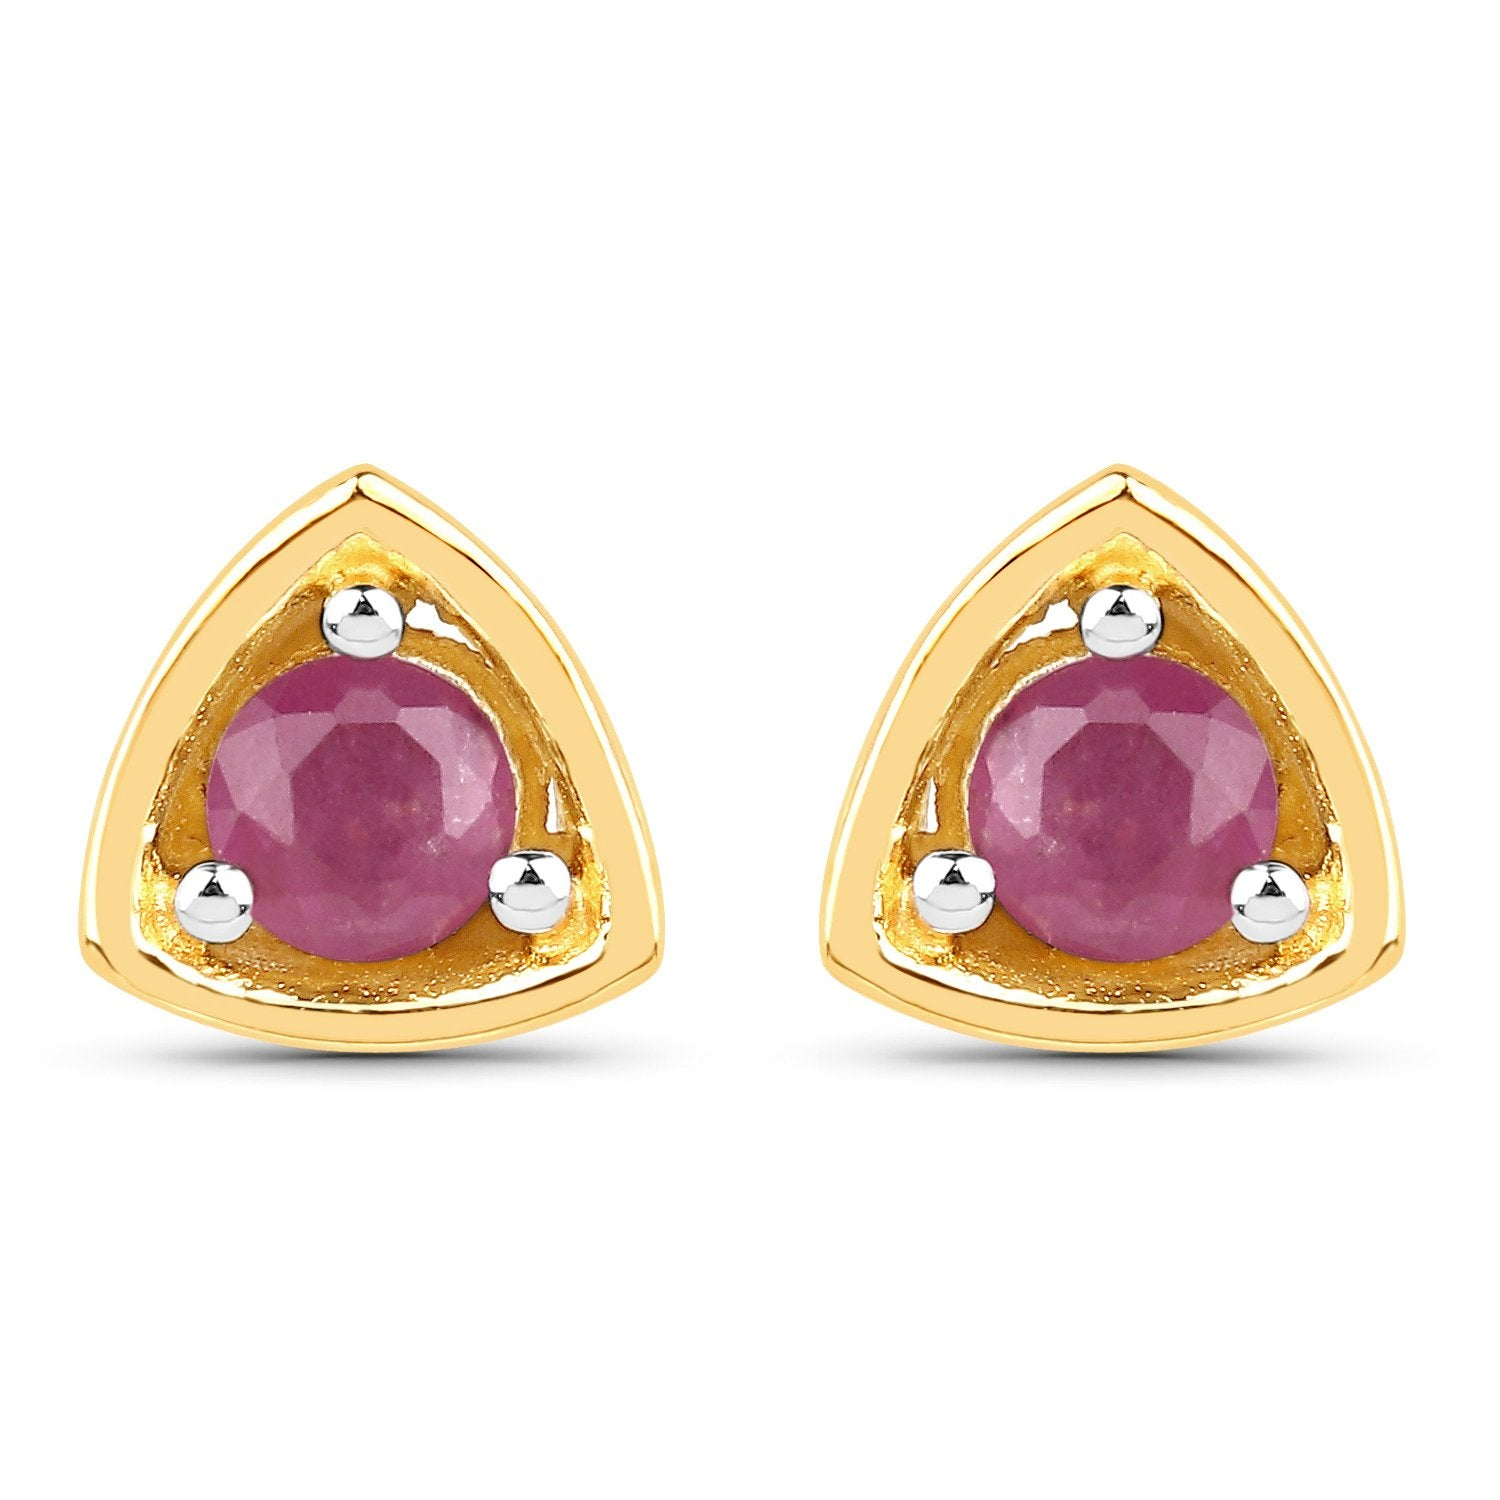 LoveHuang 0.23 Carats Genuine Thai Ruby Triangle Stud Earrings Solid .925 Sterling Silver With 18KT Yellow Gold Plating